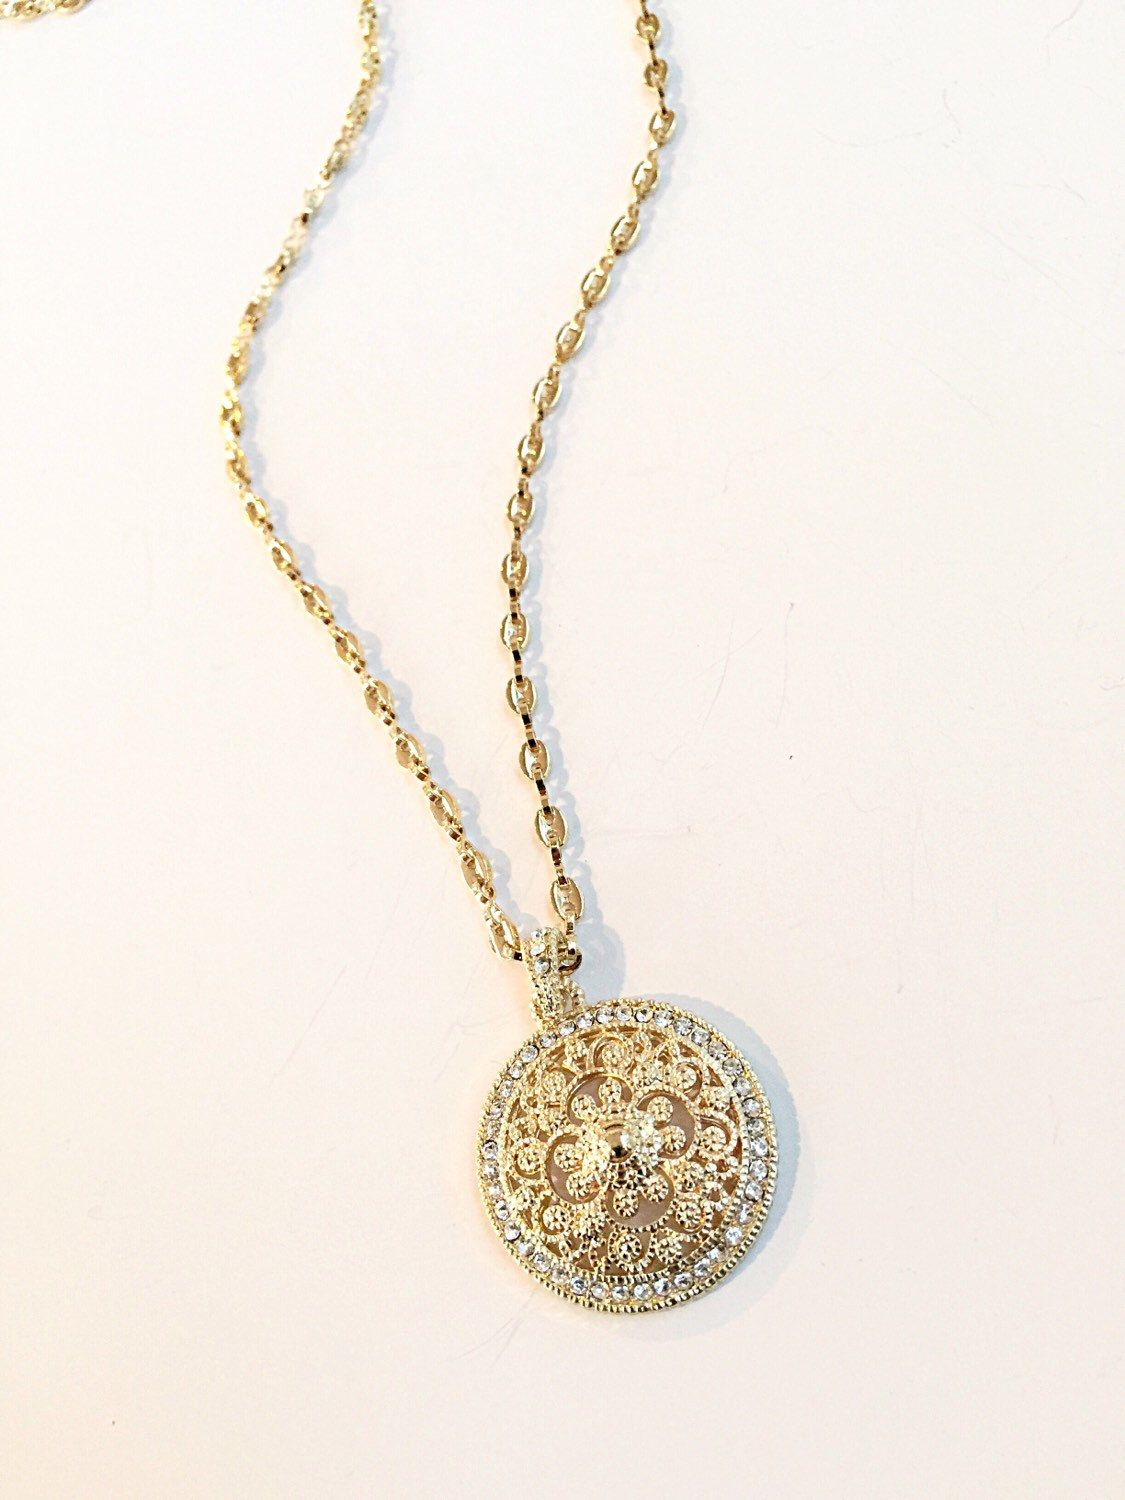 my necklace pin gold etsy chain favorite medallion listing to on shop com from a druzy similar layering items personal s